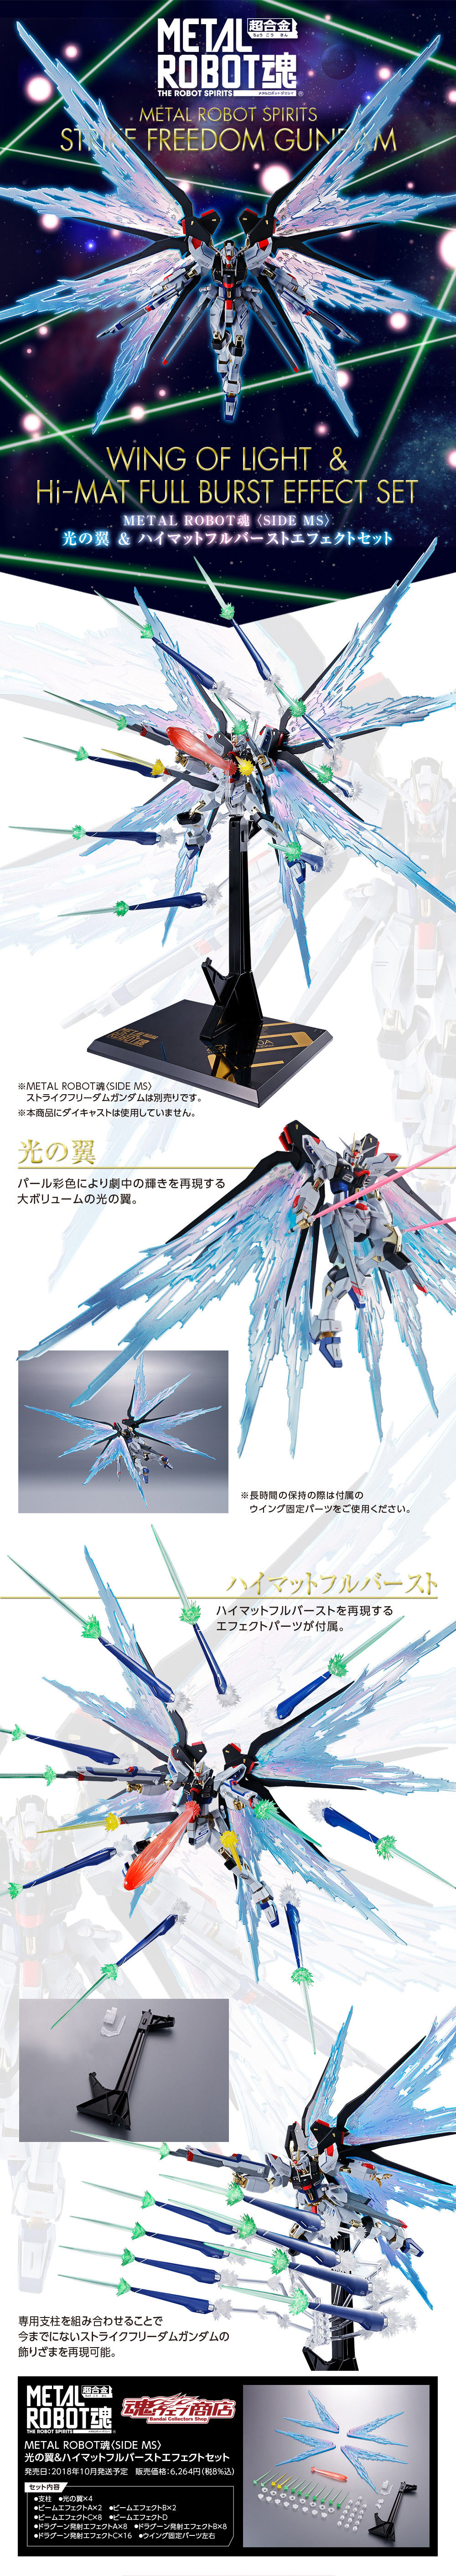 METAL ROBOT SPIRIT (SIDE MS) STRIKE FREEDOM WING OF LIGHT AND ALL SHOOTING EFFECT KIT